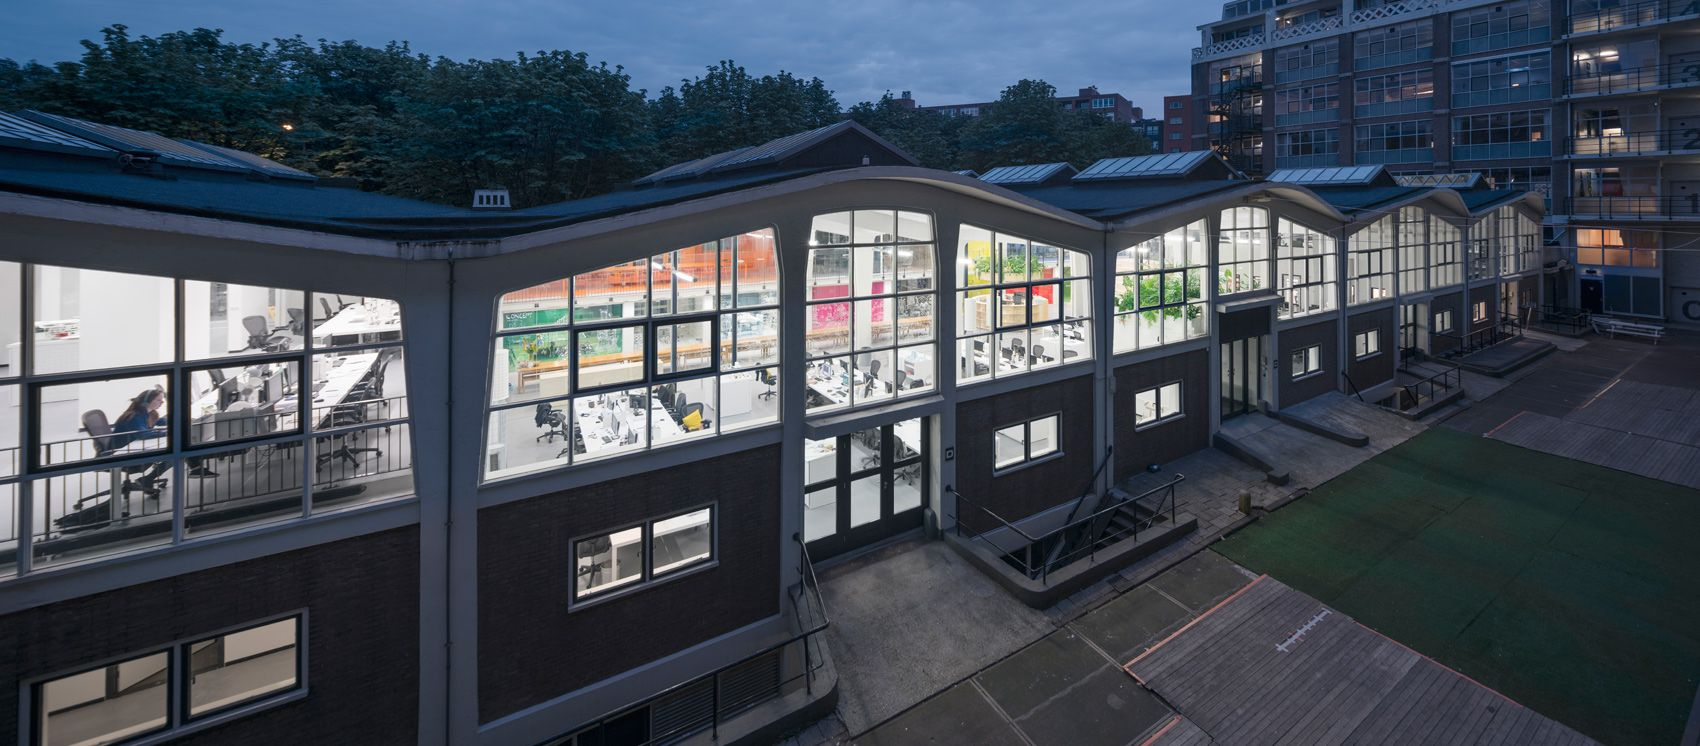 Inside mvrdvus vibrant new office space in rotterdam architecture